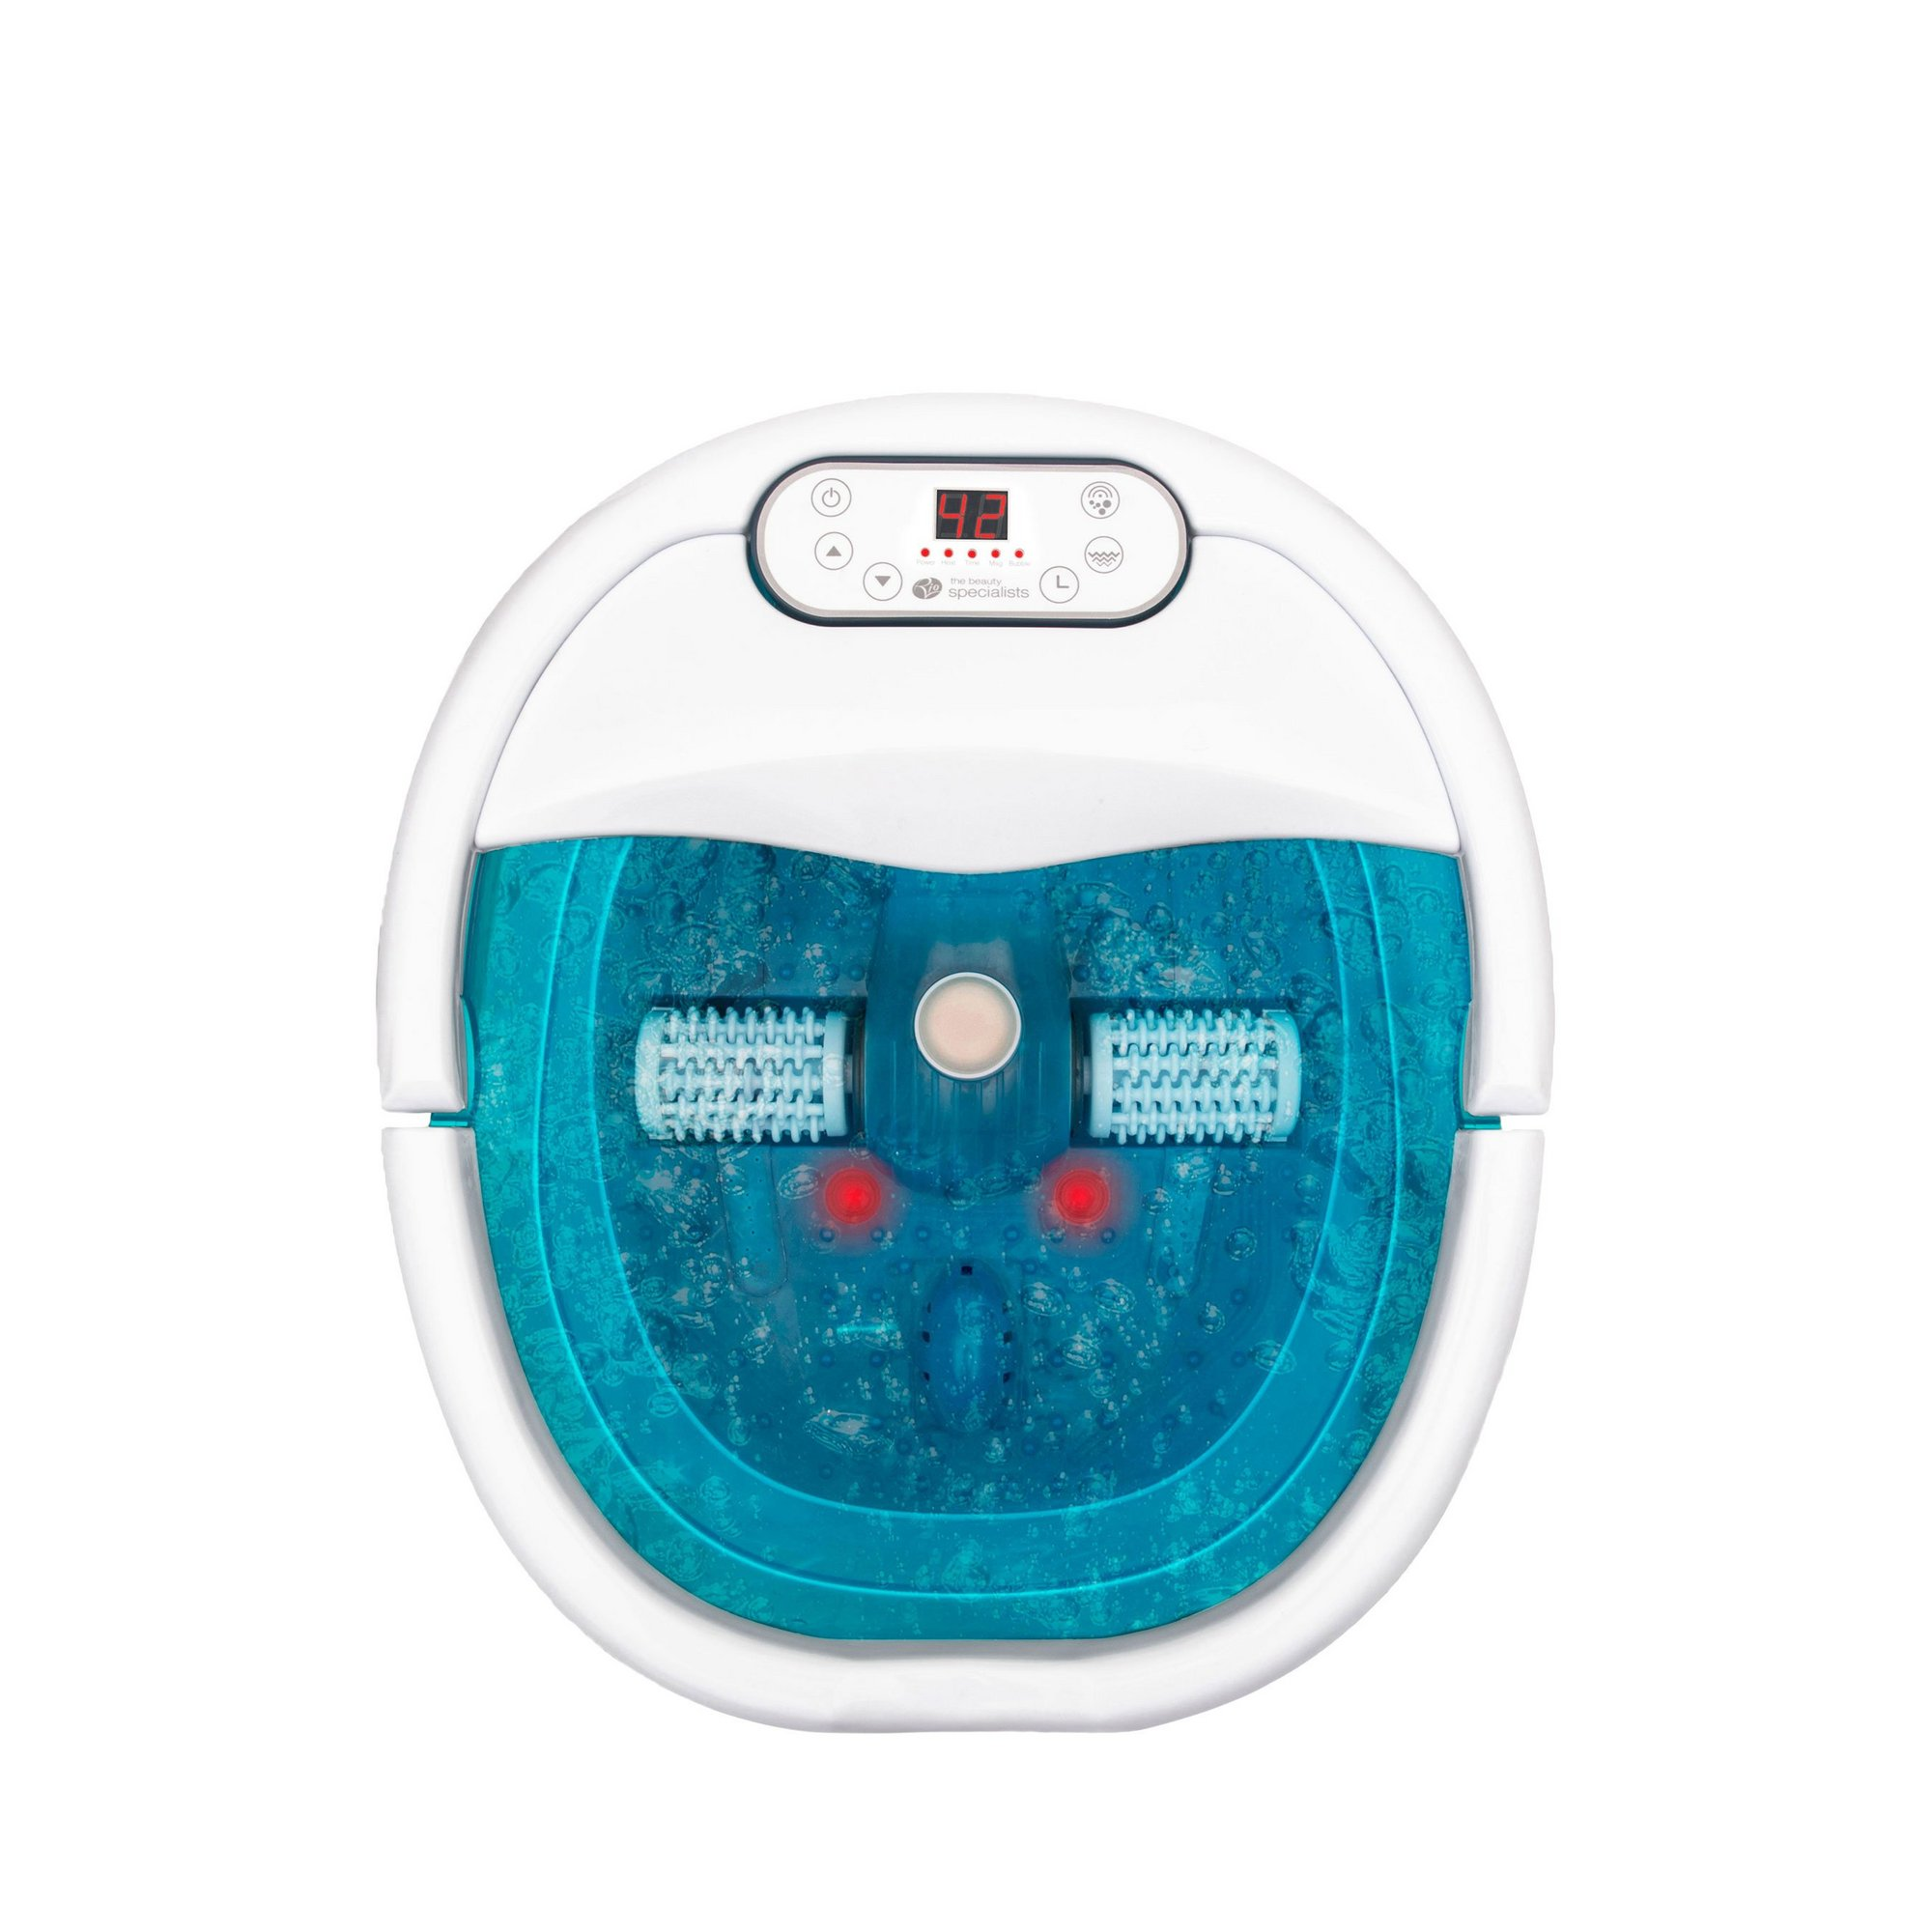 Image of Rio Multi-Functional Foot Bath Spa and Massager